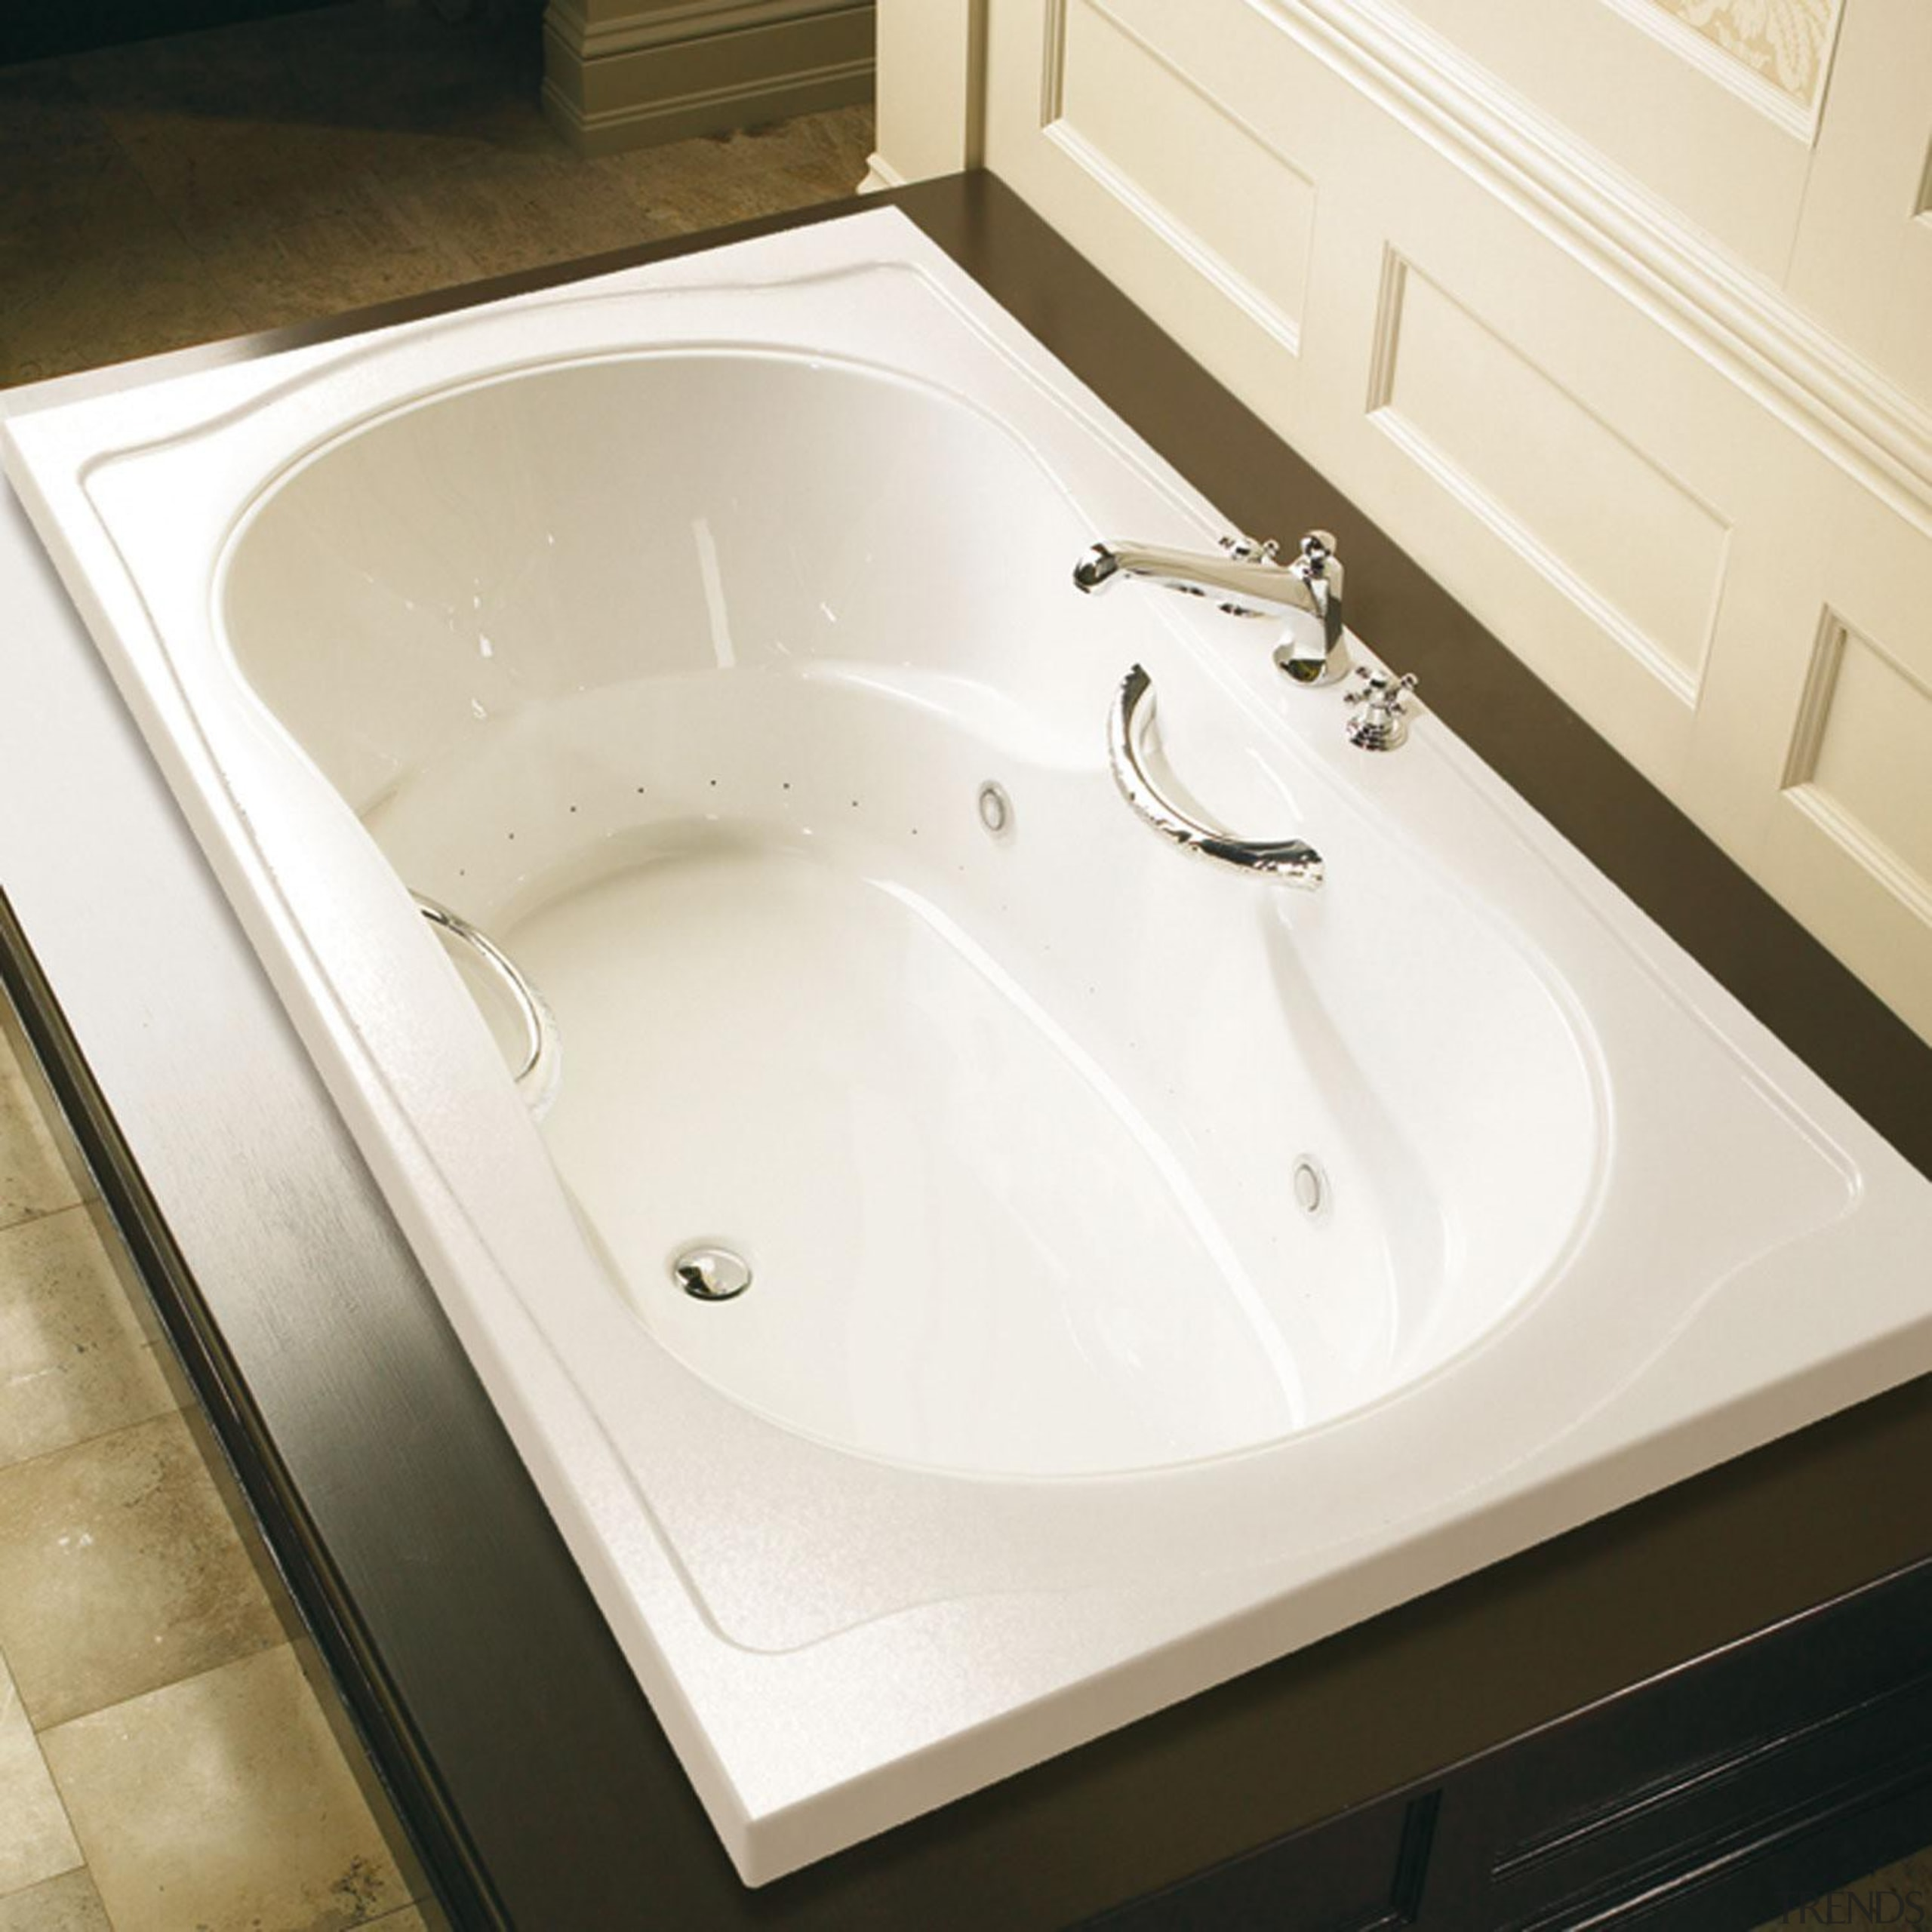 This bath can be installed either in a angle, bathroom, bathroom sink, bathtub, ceramic, countertop, floor, plumbing fixture, product design, sink, tap, tile, toilet seat, white